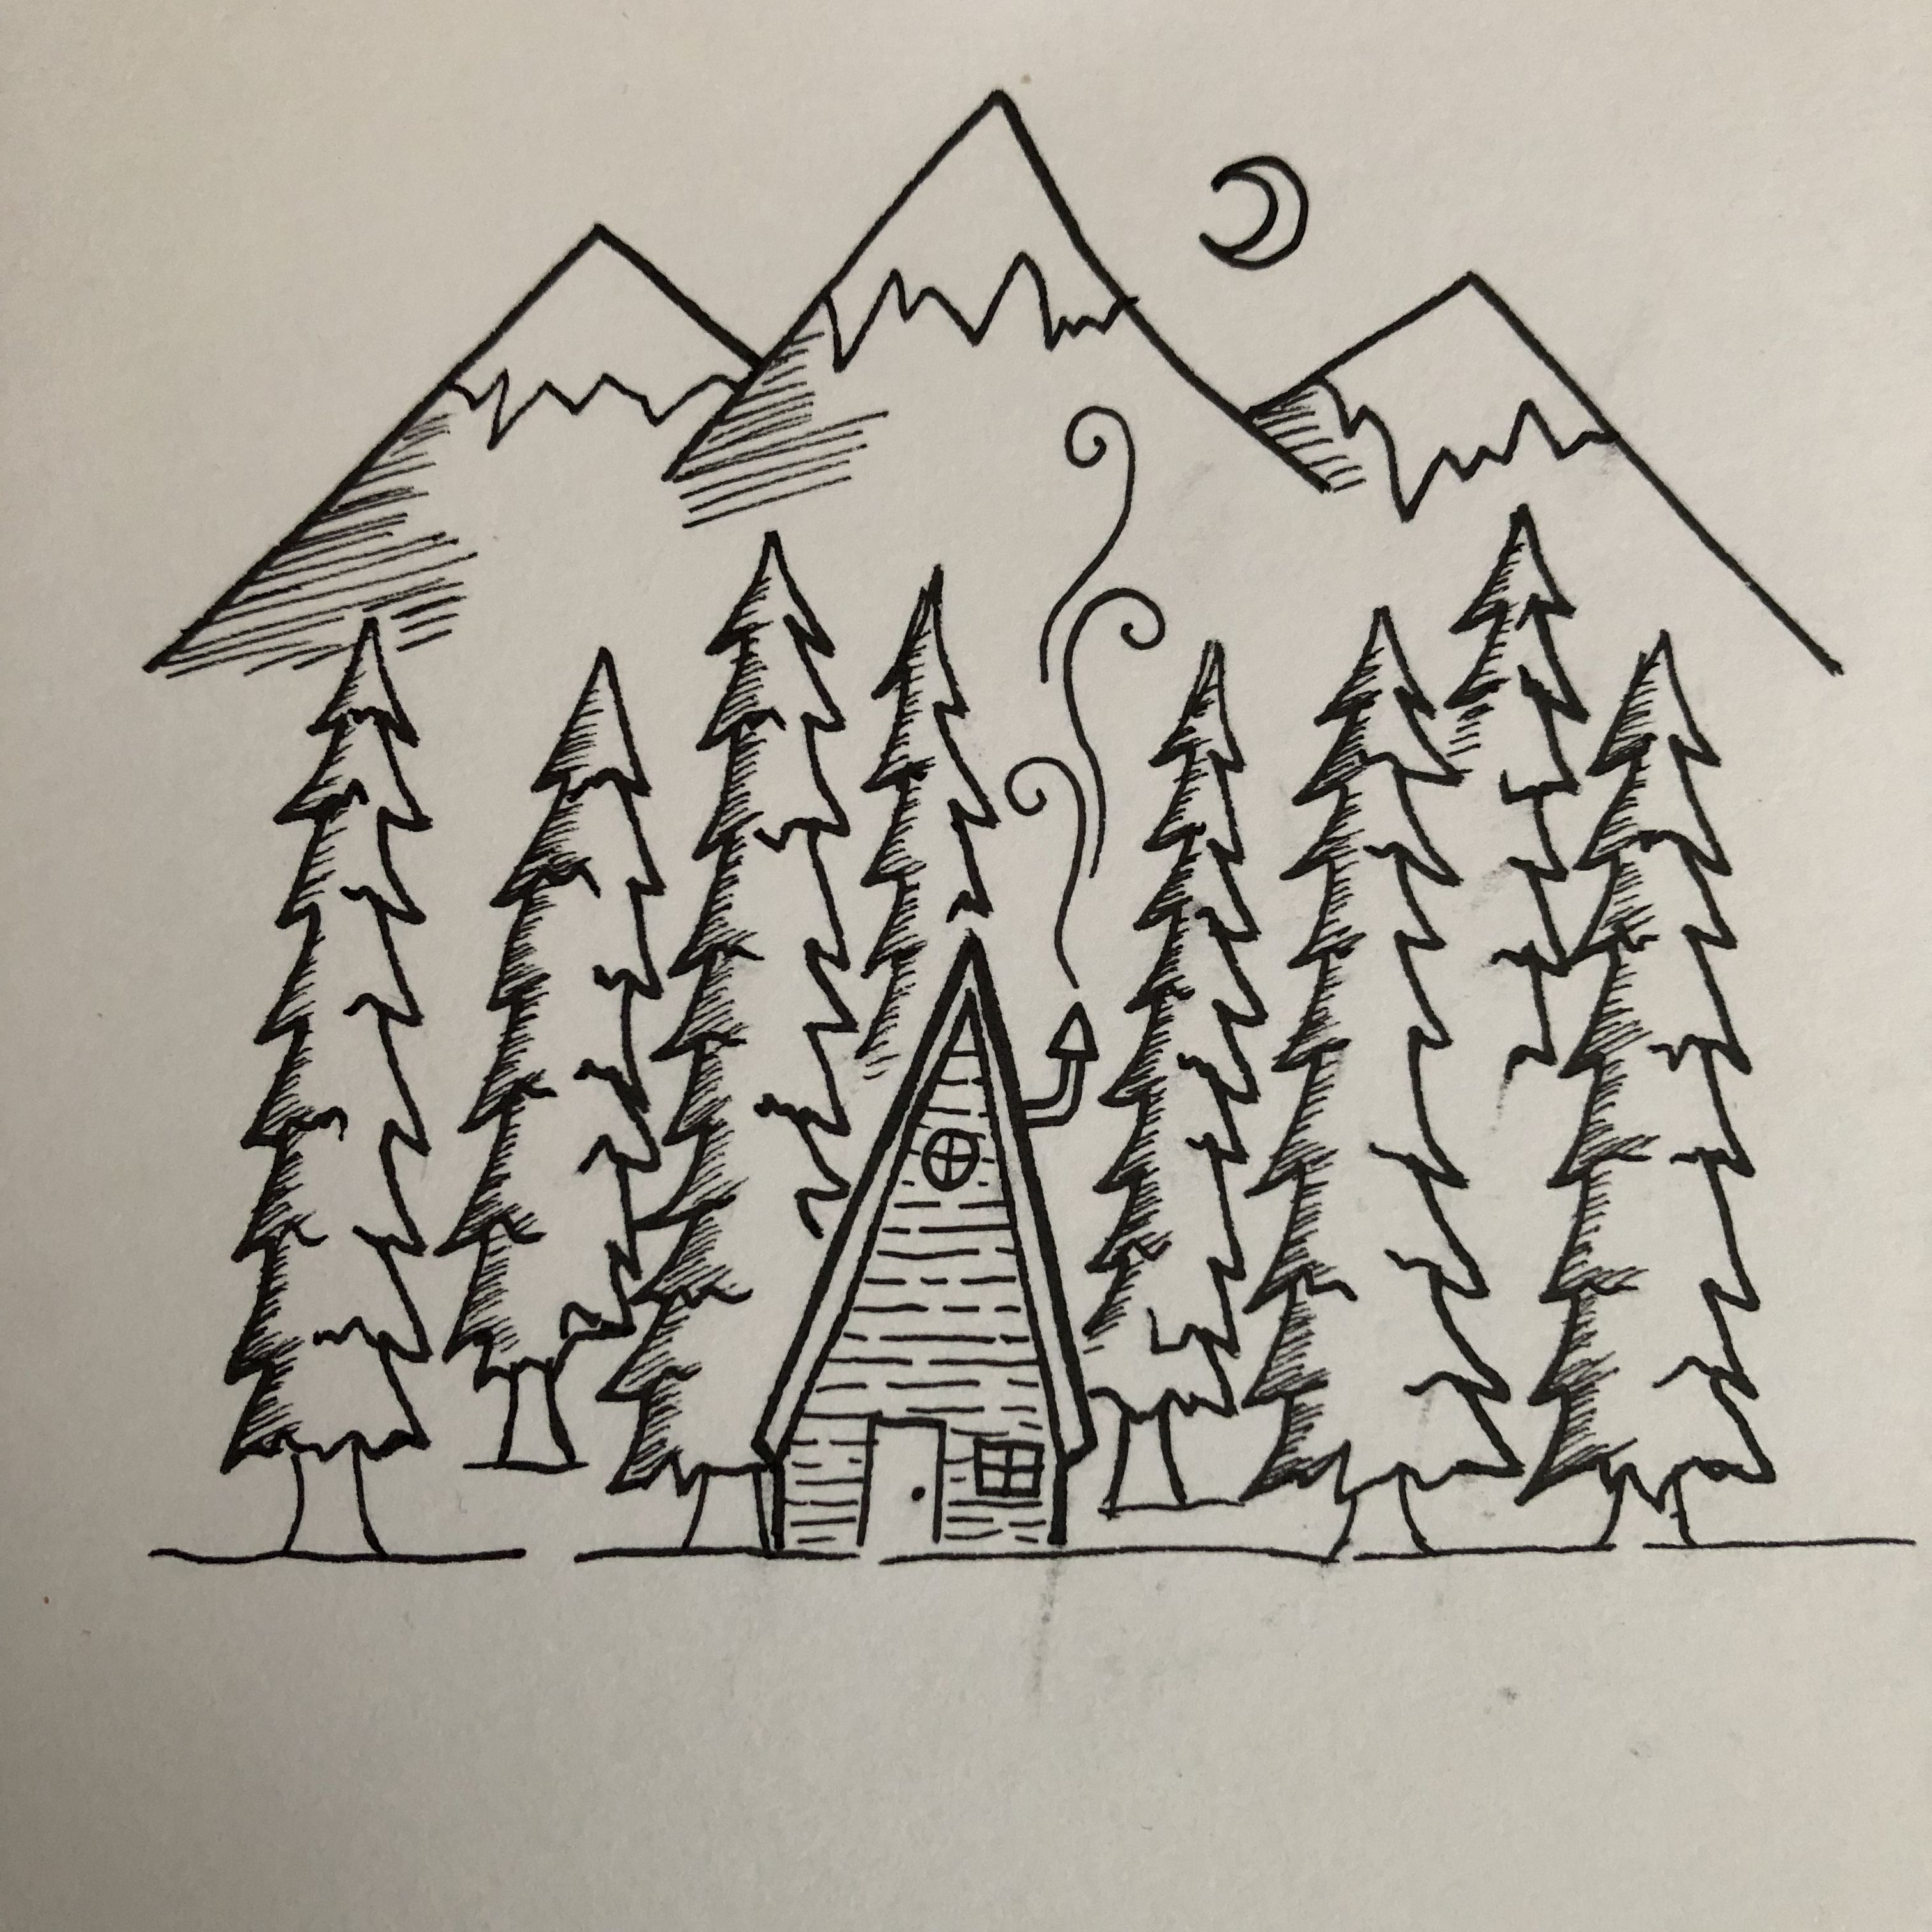 Forest clipart black and white sketch. Pen drawing mountains snow